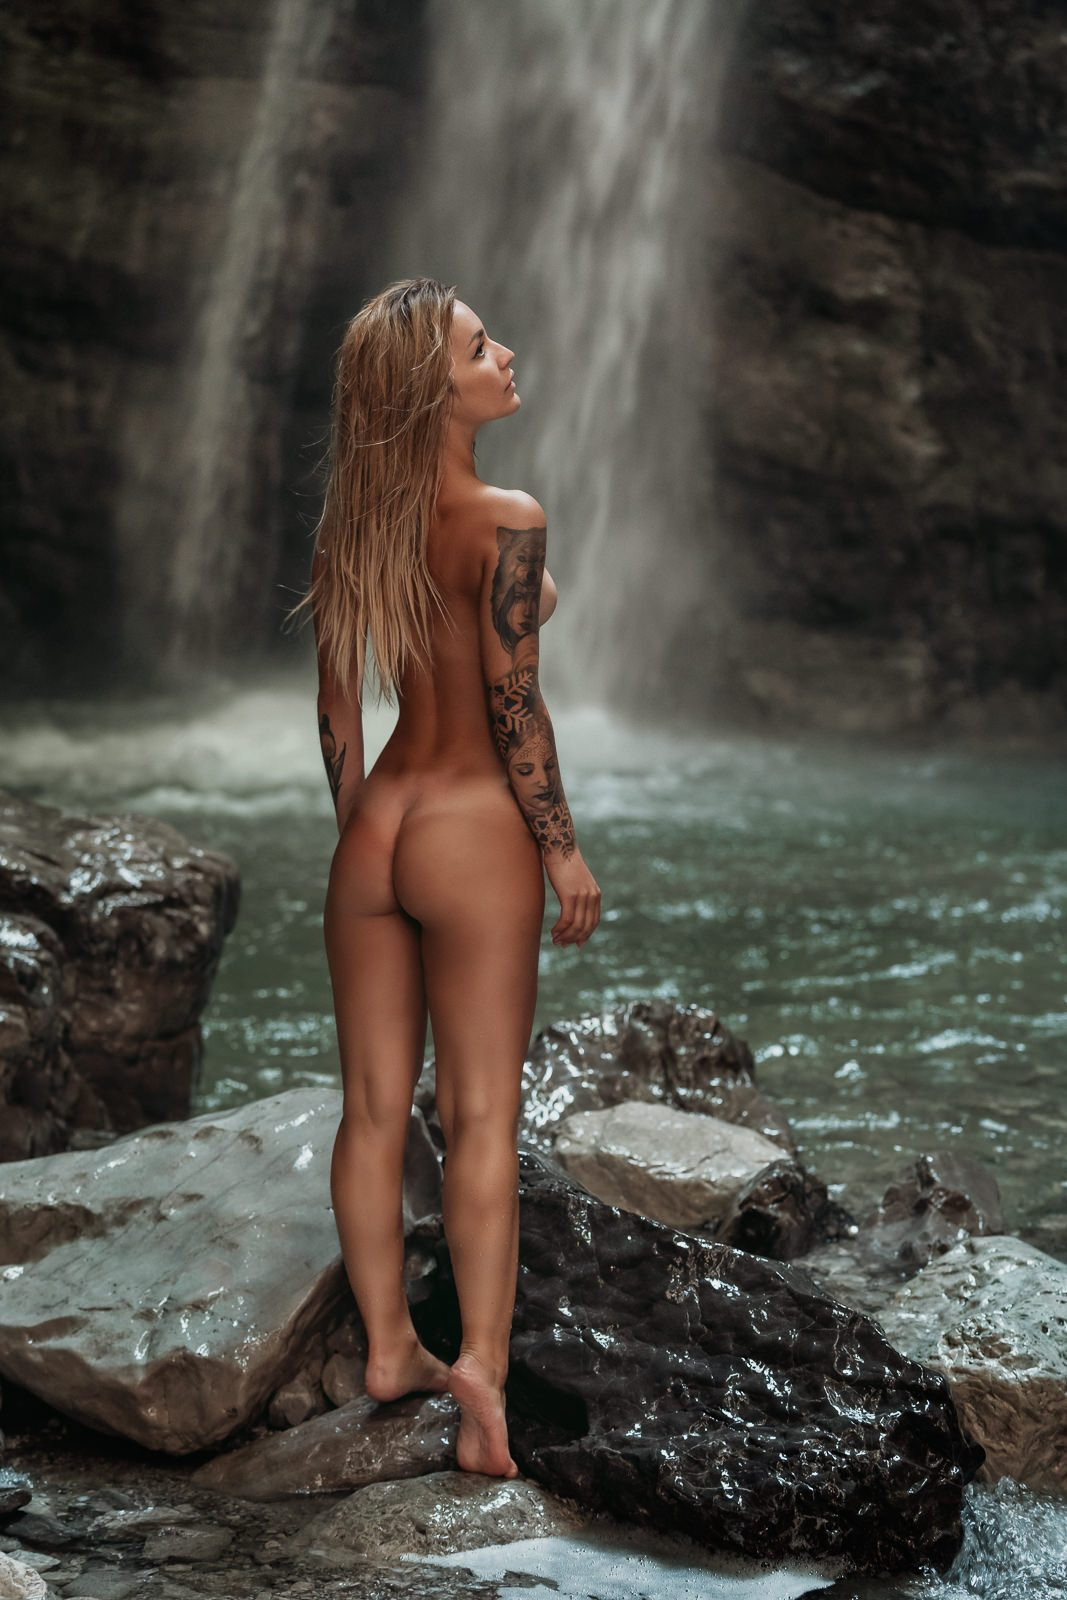 Erica Vignola photographed by Nico Ruffato in a beautiful waterfall in the Dolomites.